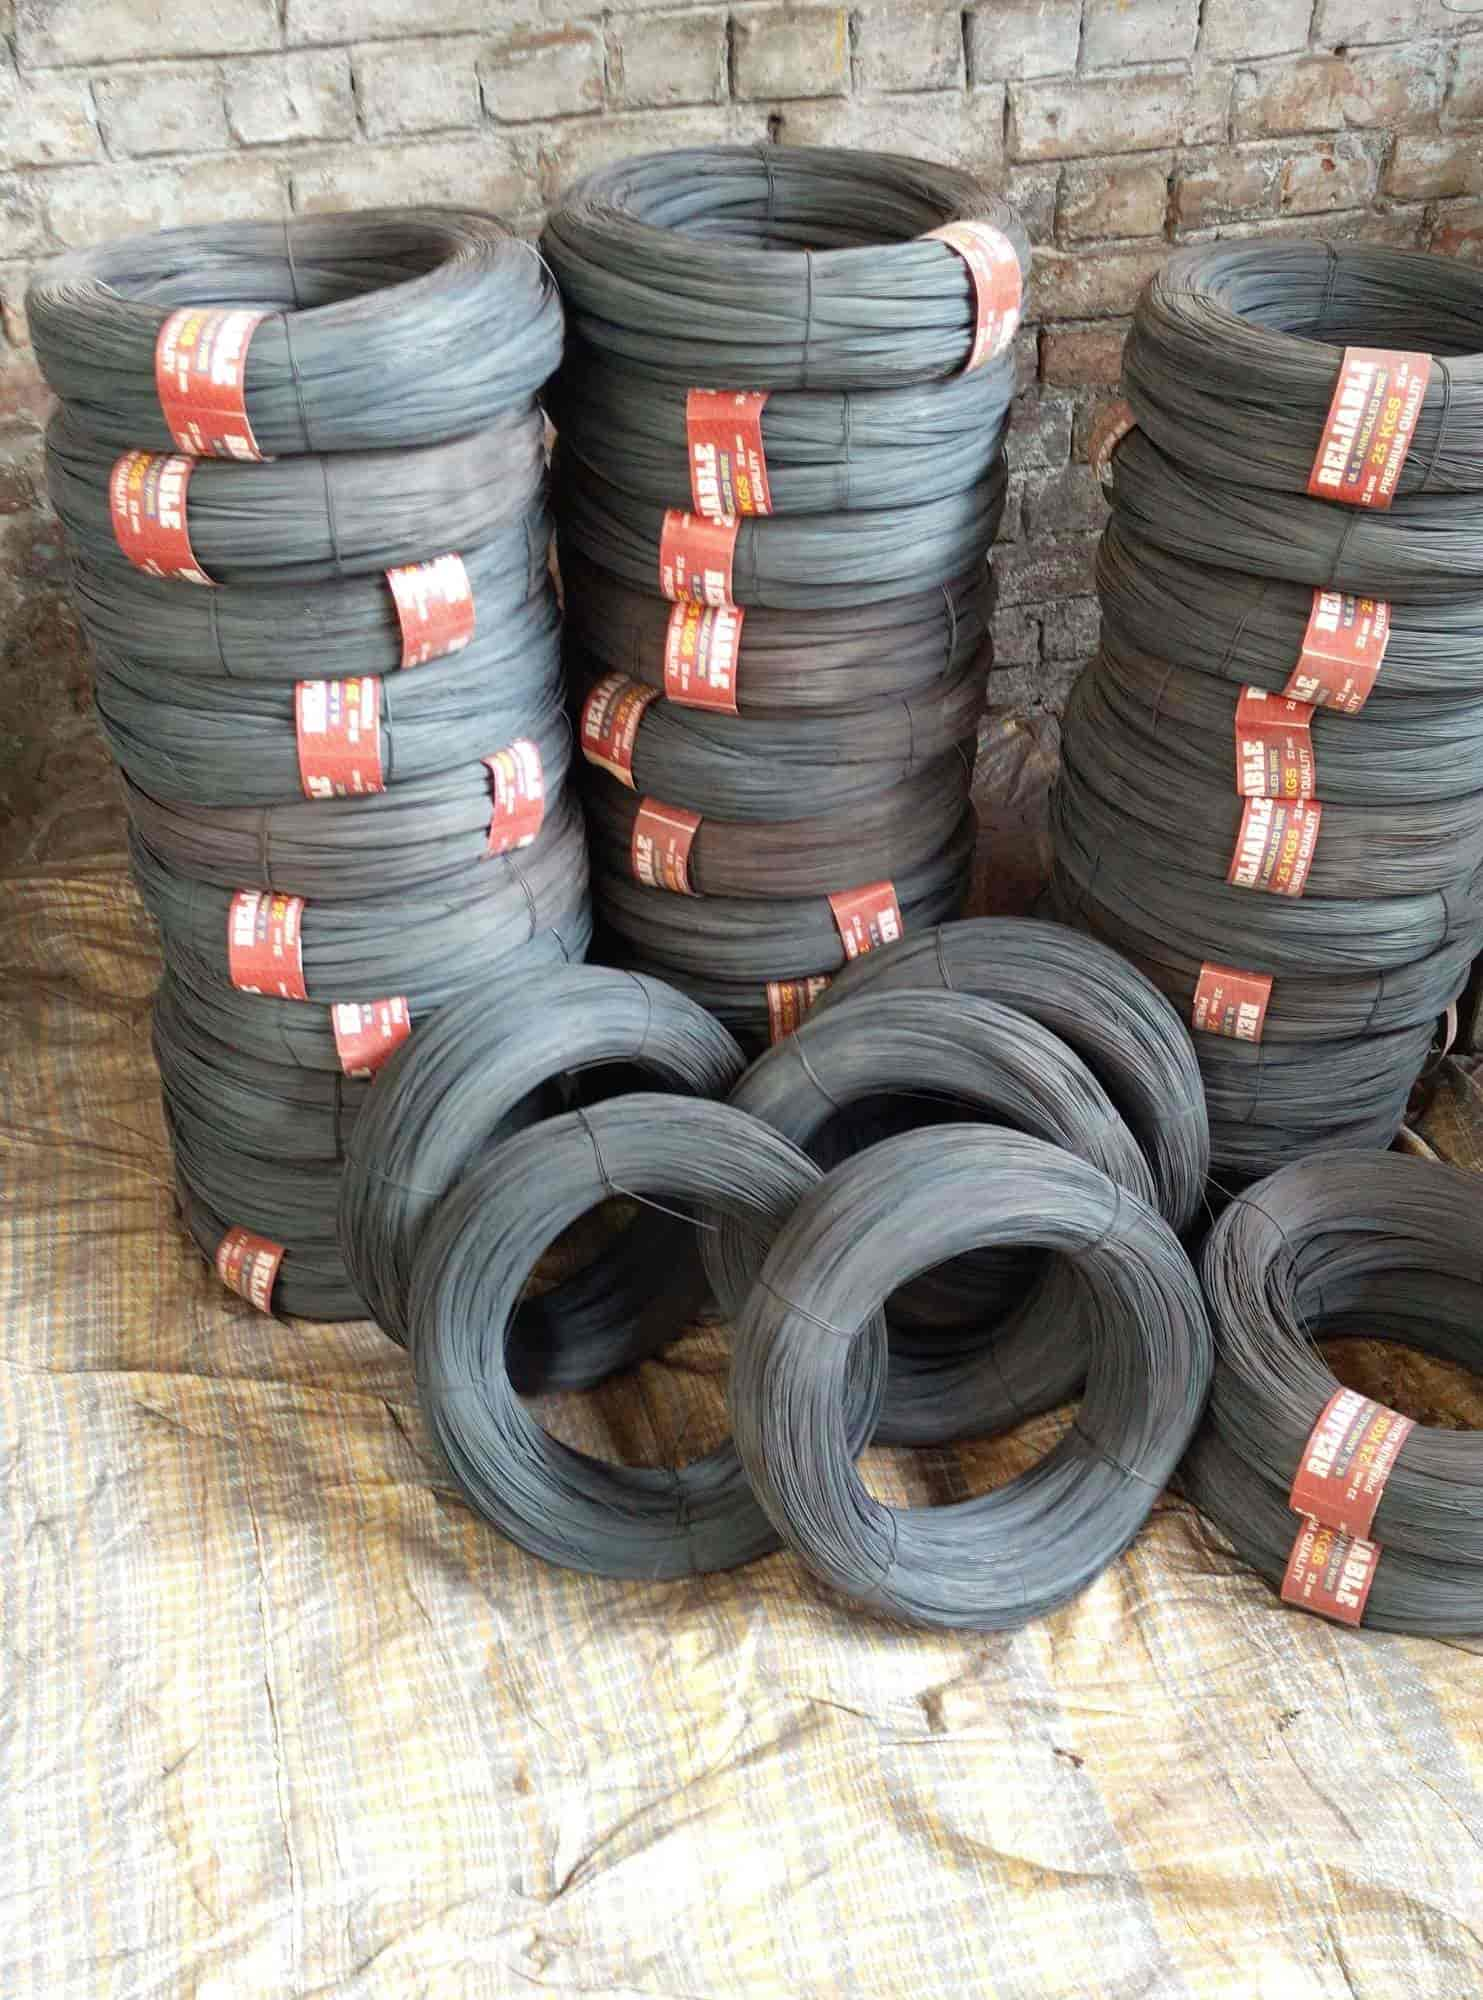 Reliable WIRE Photos, Liluah, Howrah- Pictures & Images Gallery ...